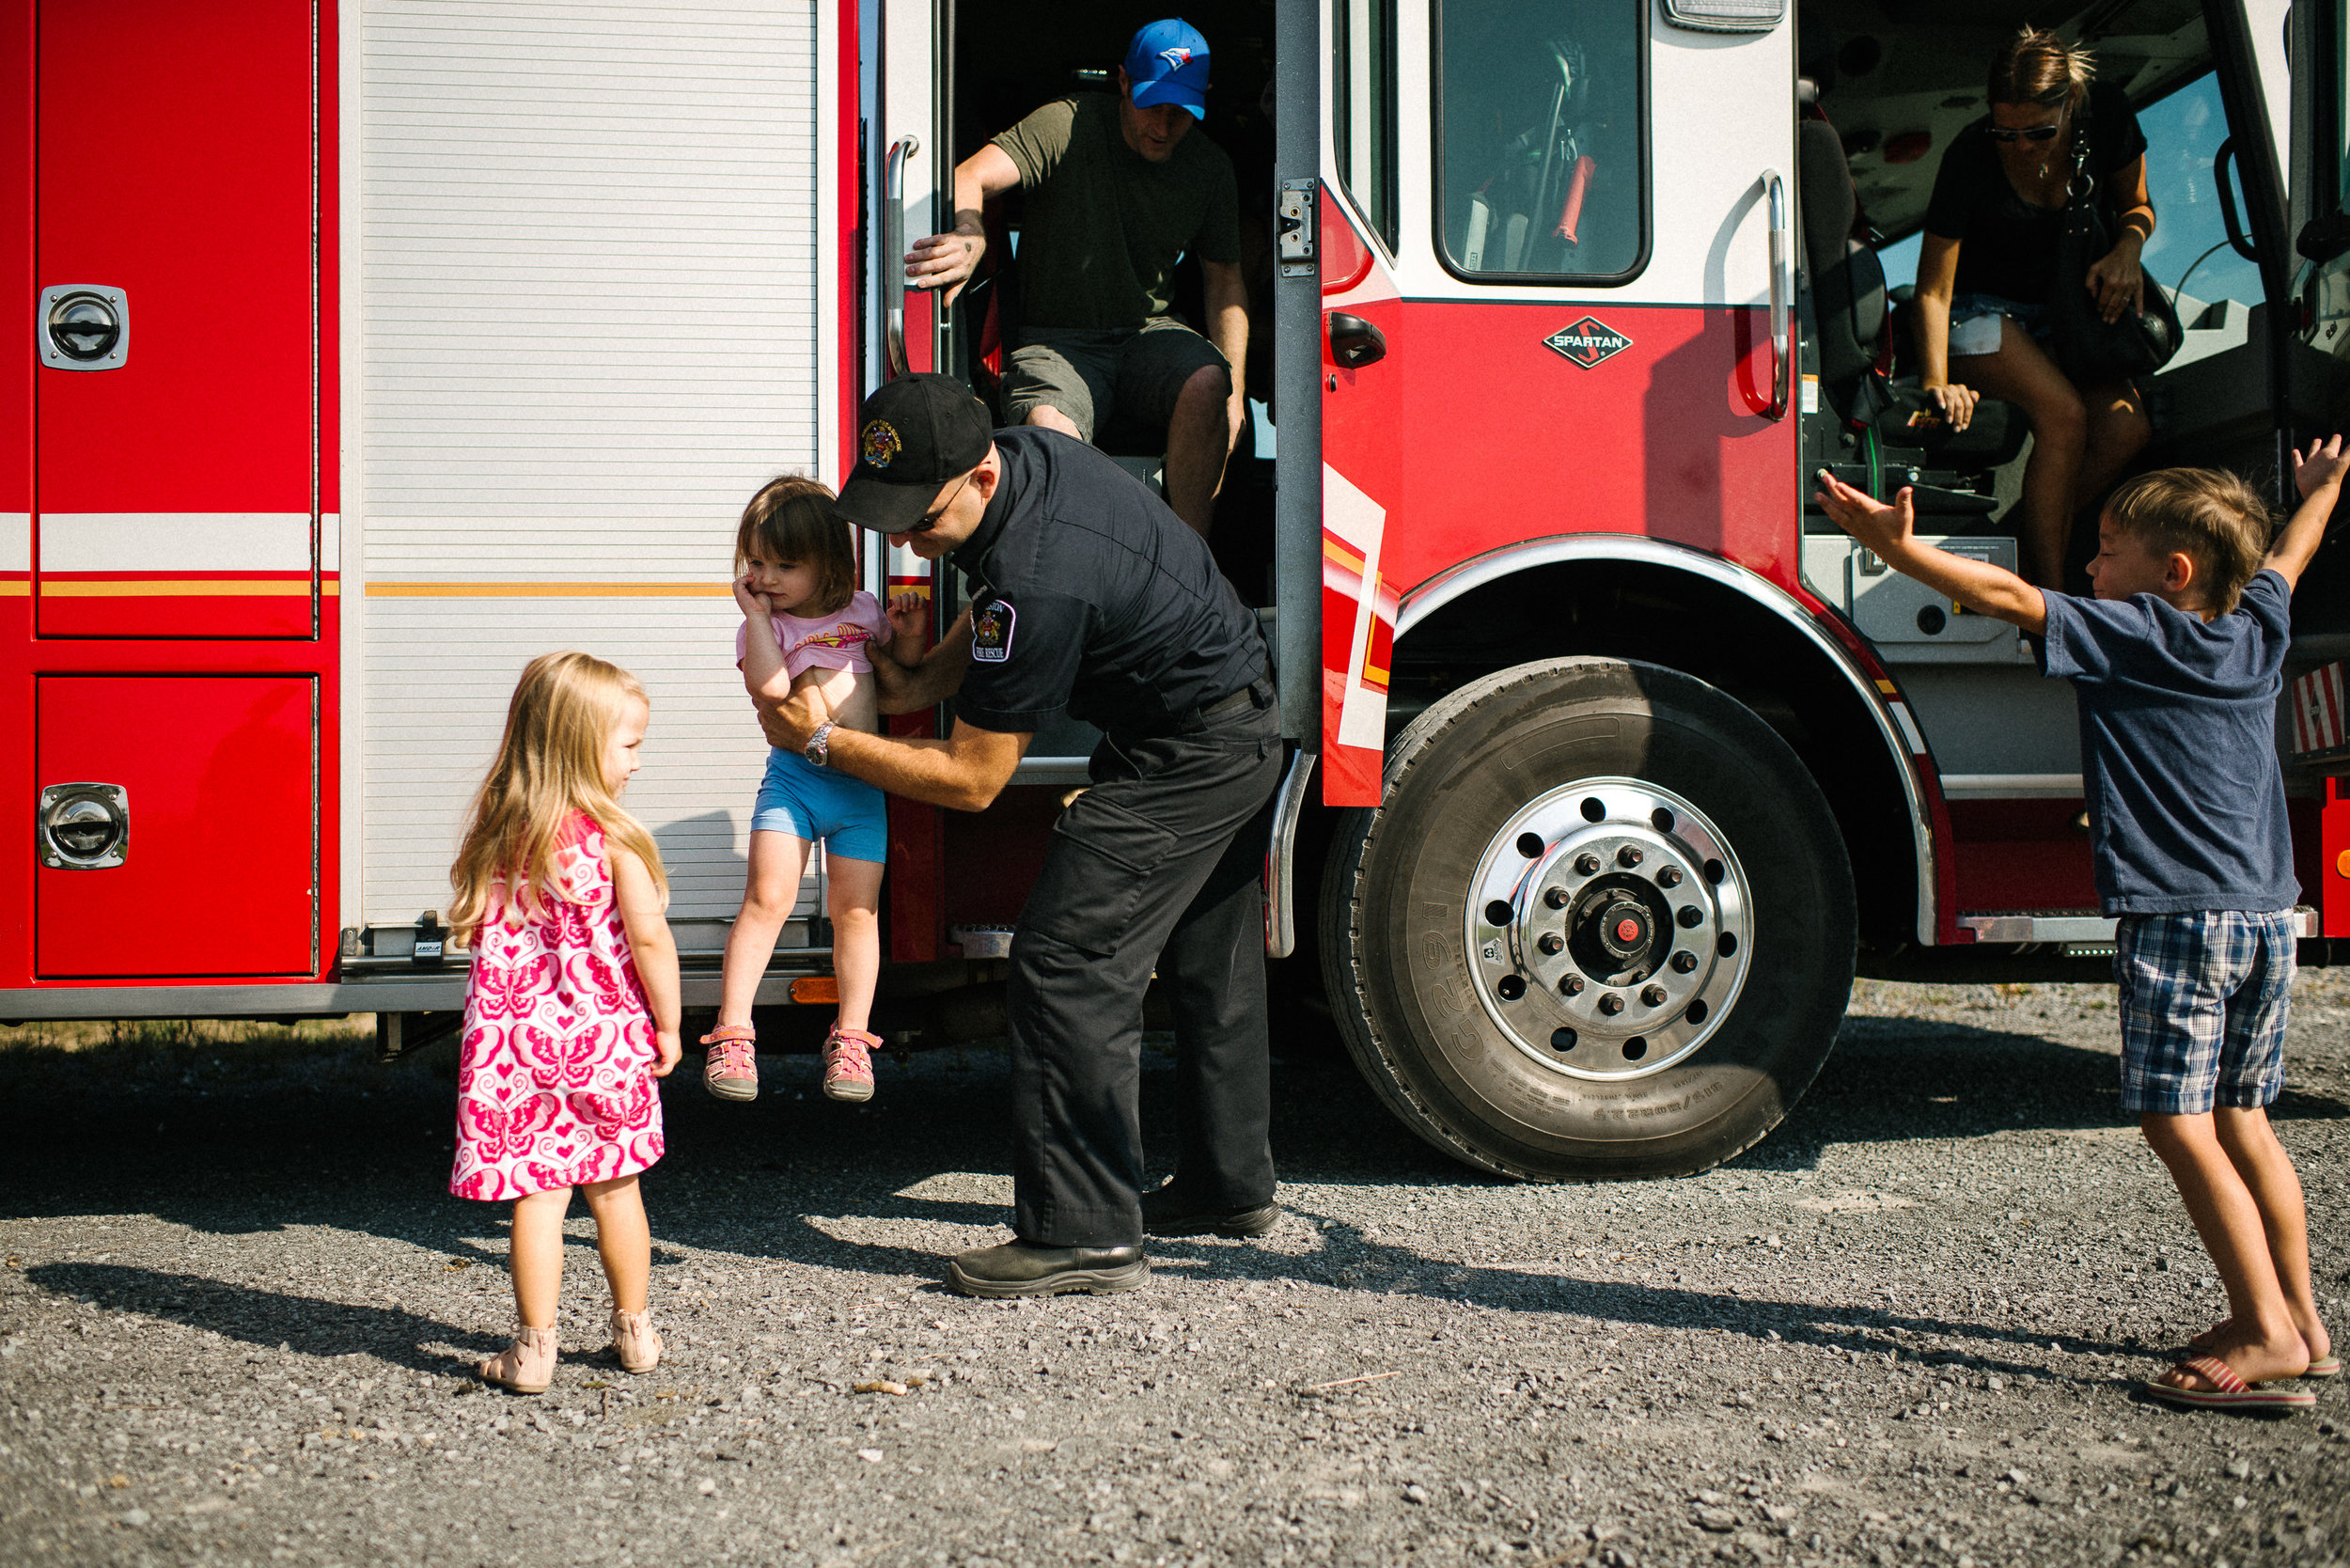 fire engine red family documentary photography-170923103307vm.jpg